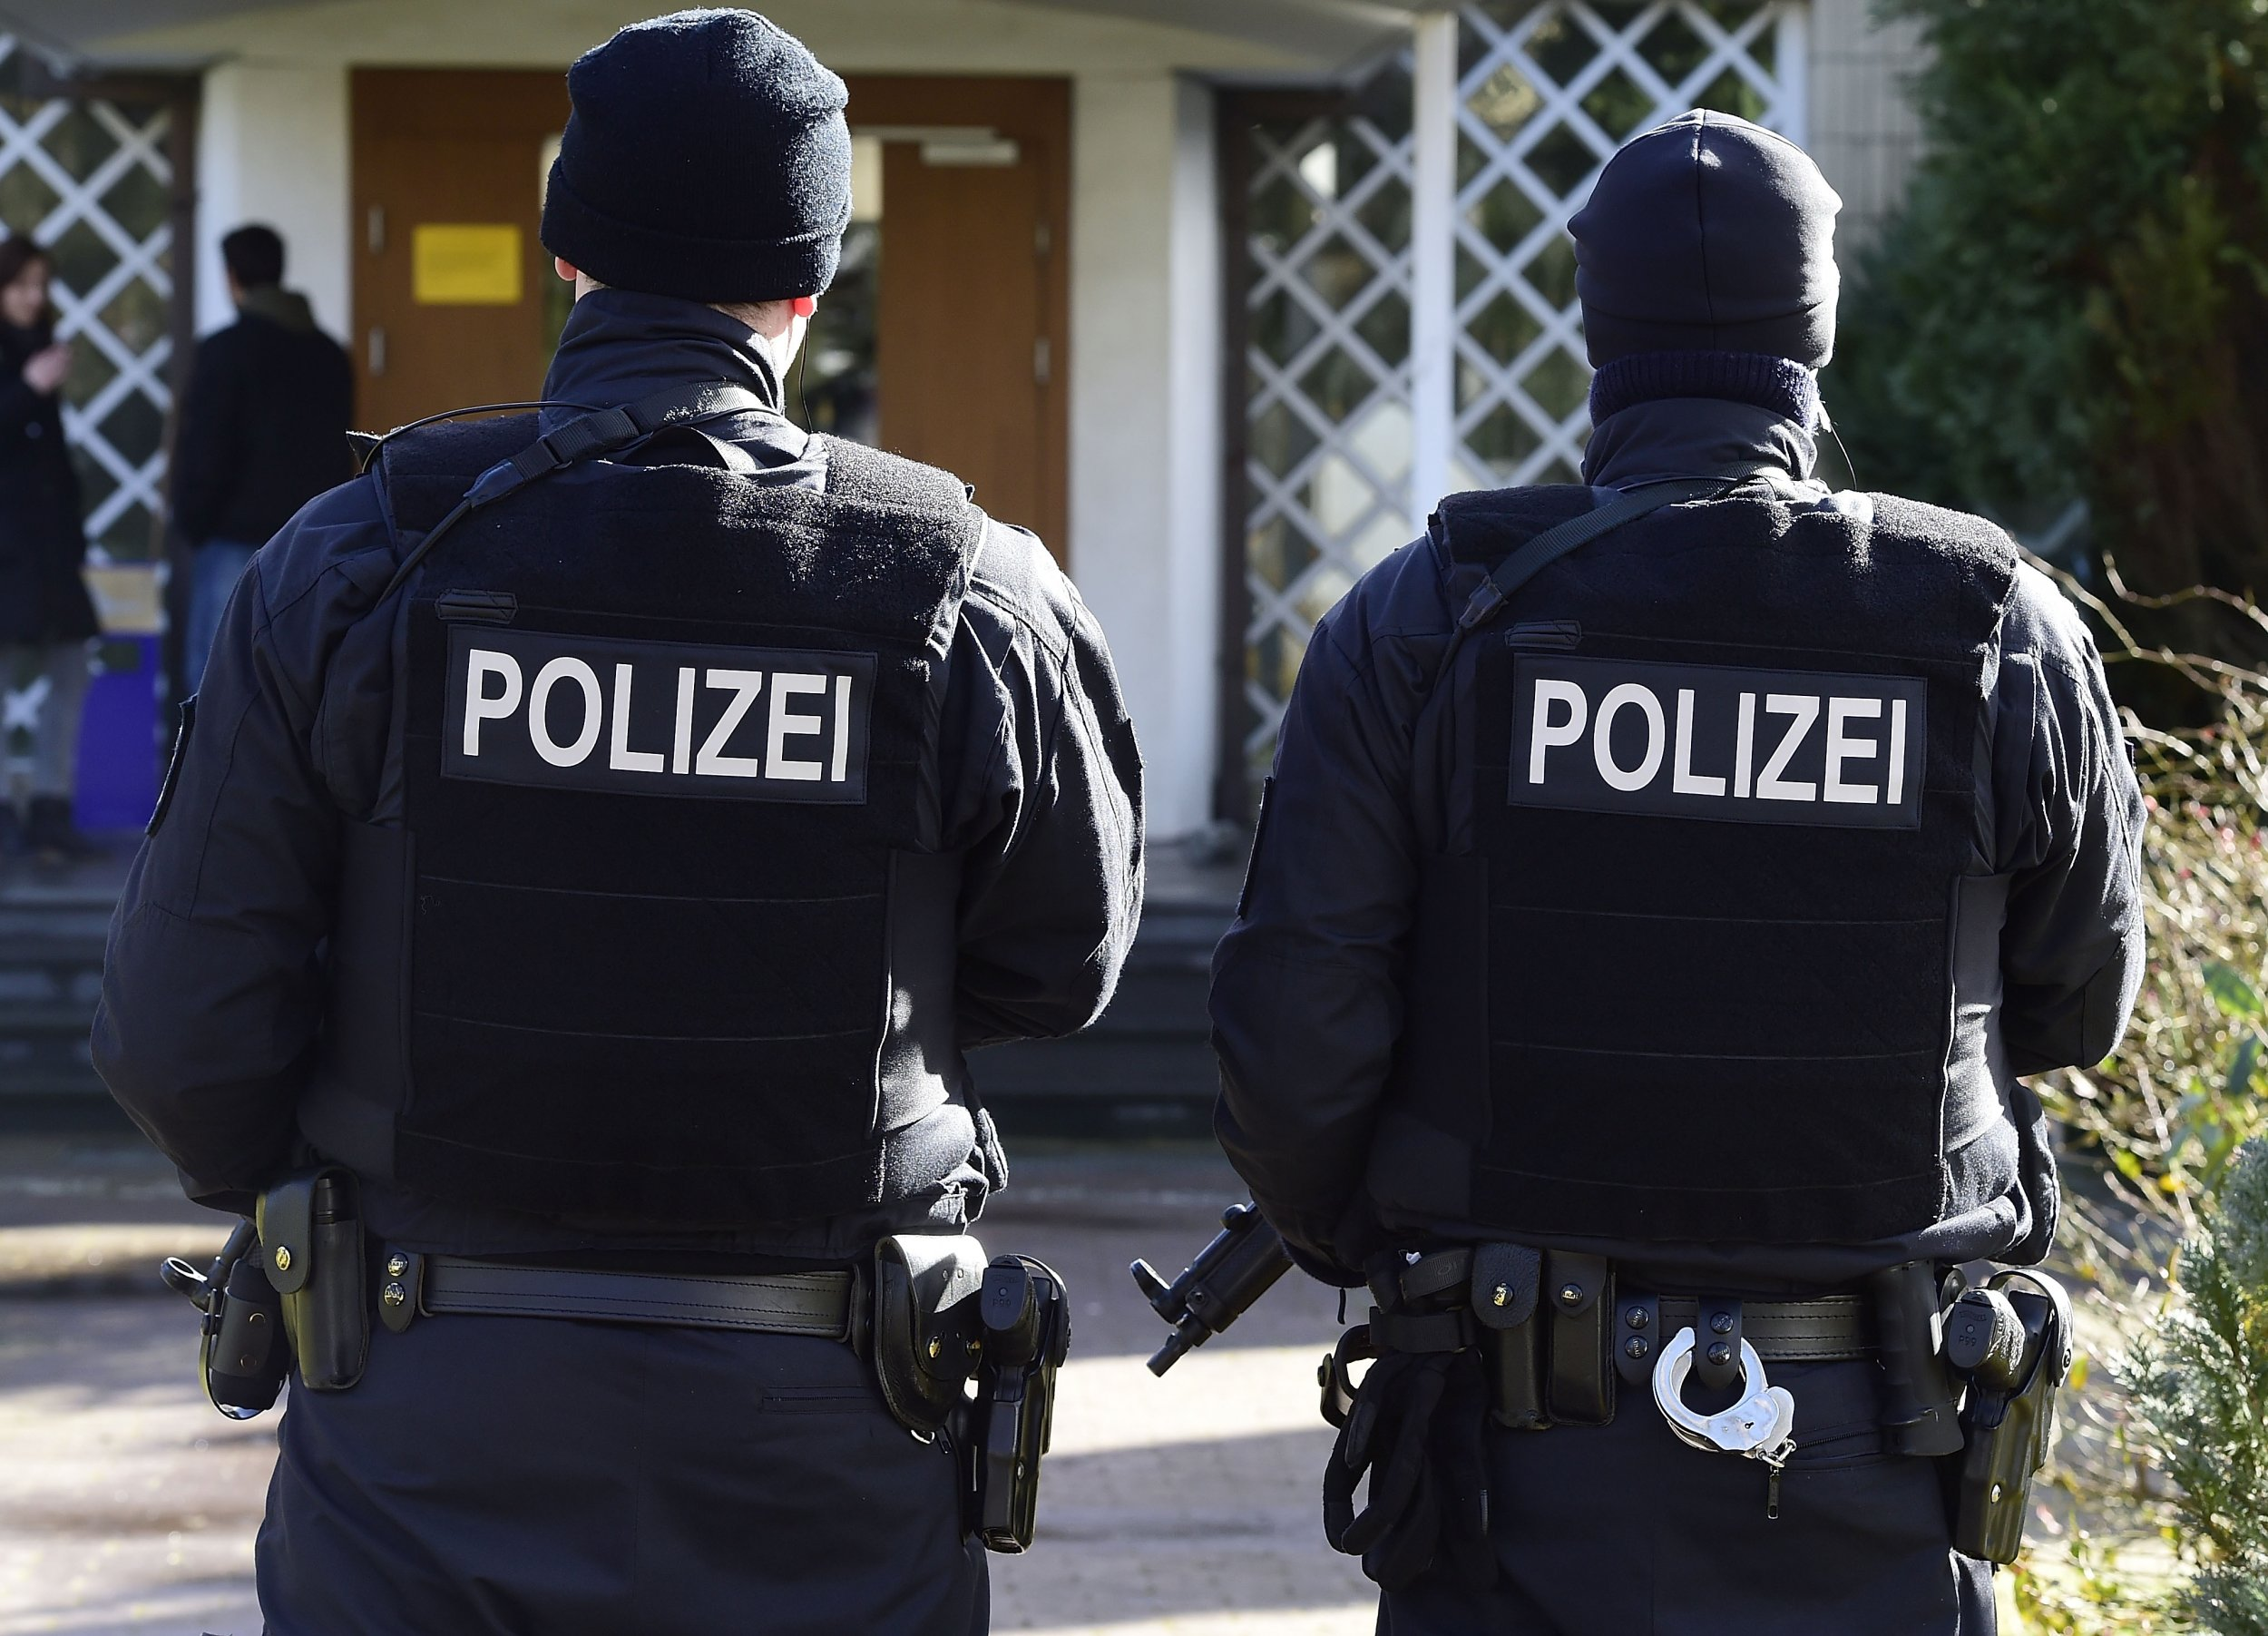 German, police, synagogue, anti-Semitism, protection, Angela Merkel